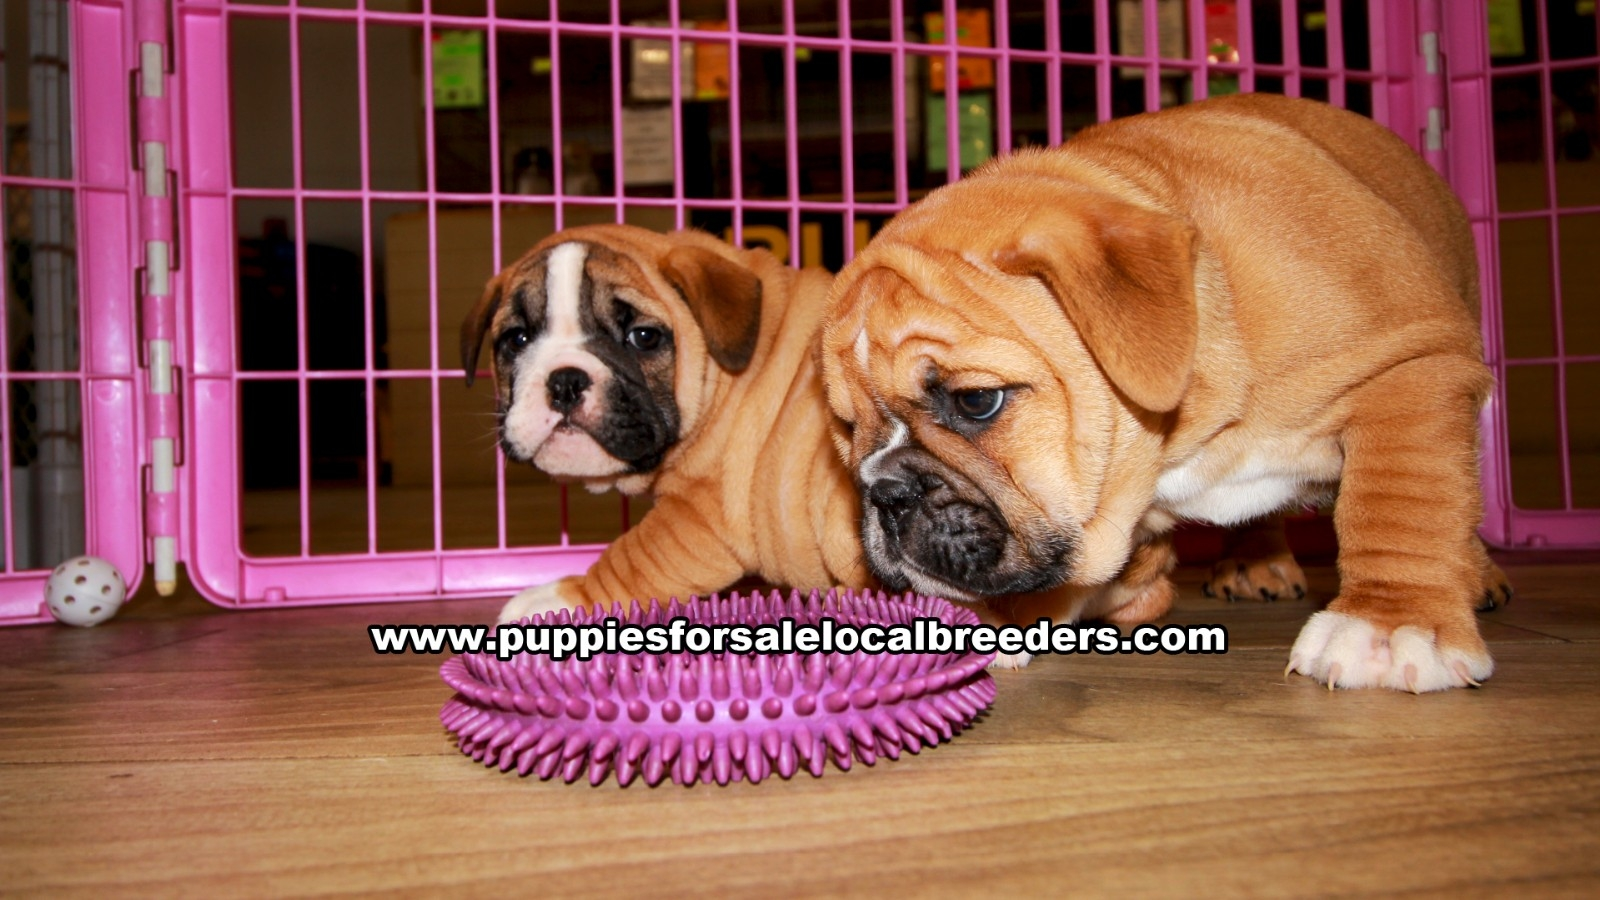 English Bulldog, Puppies For Sale In Georgia, Local Breeders, Near Atlanta, Ga